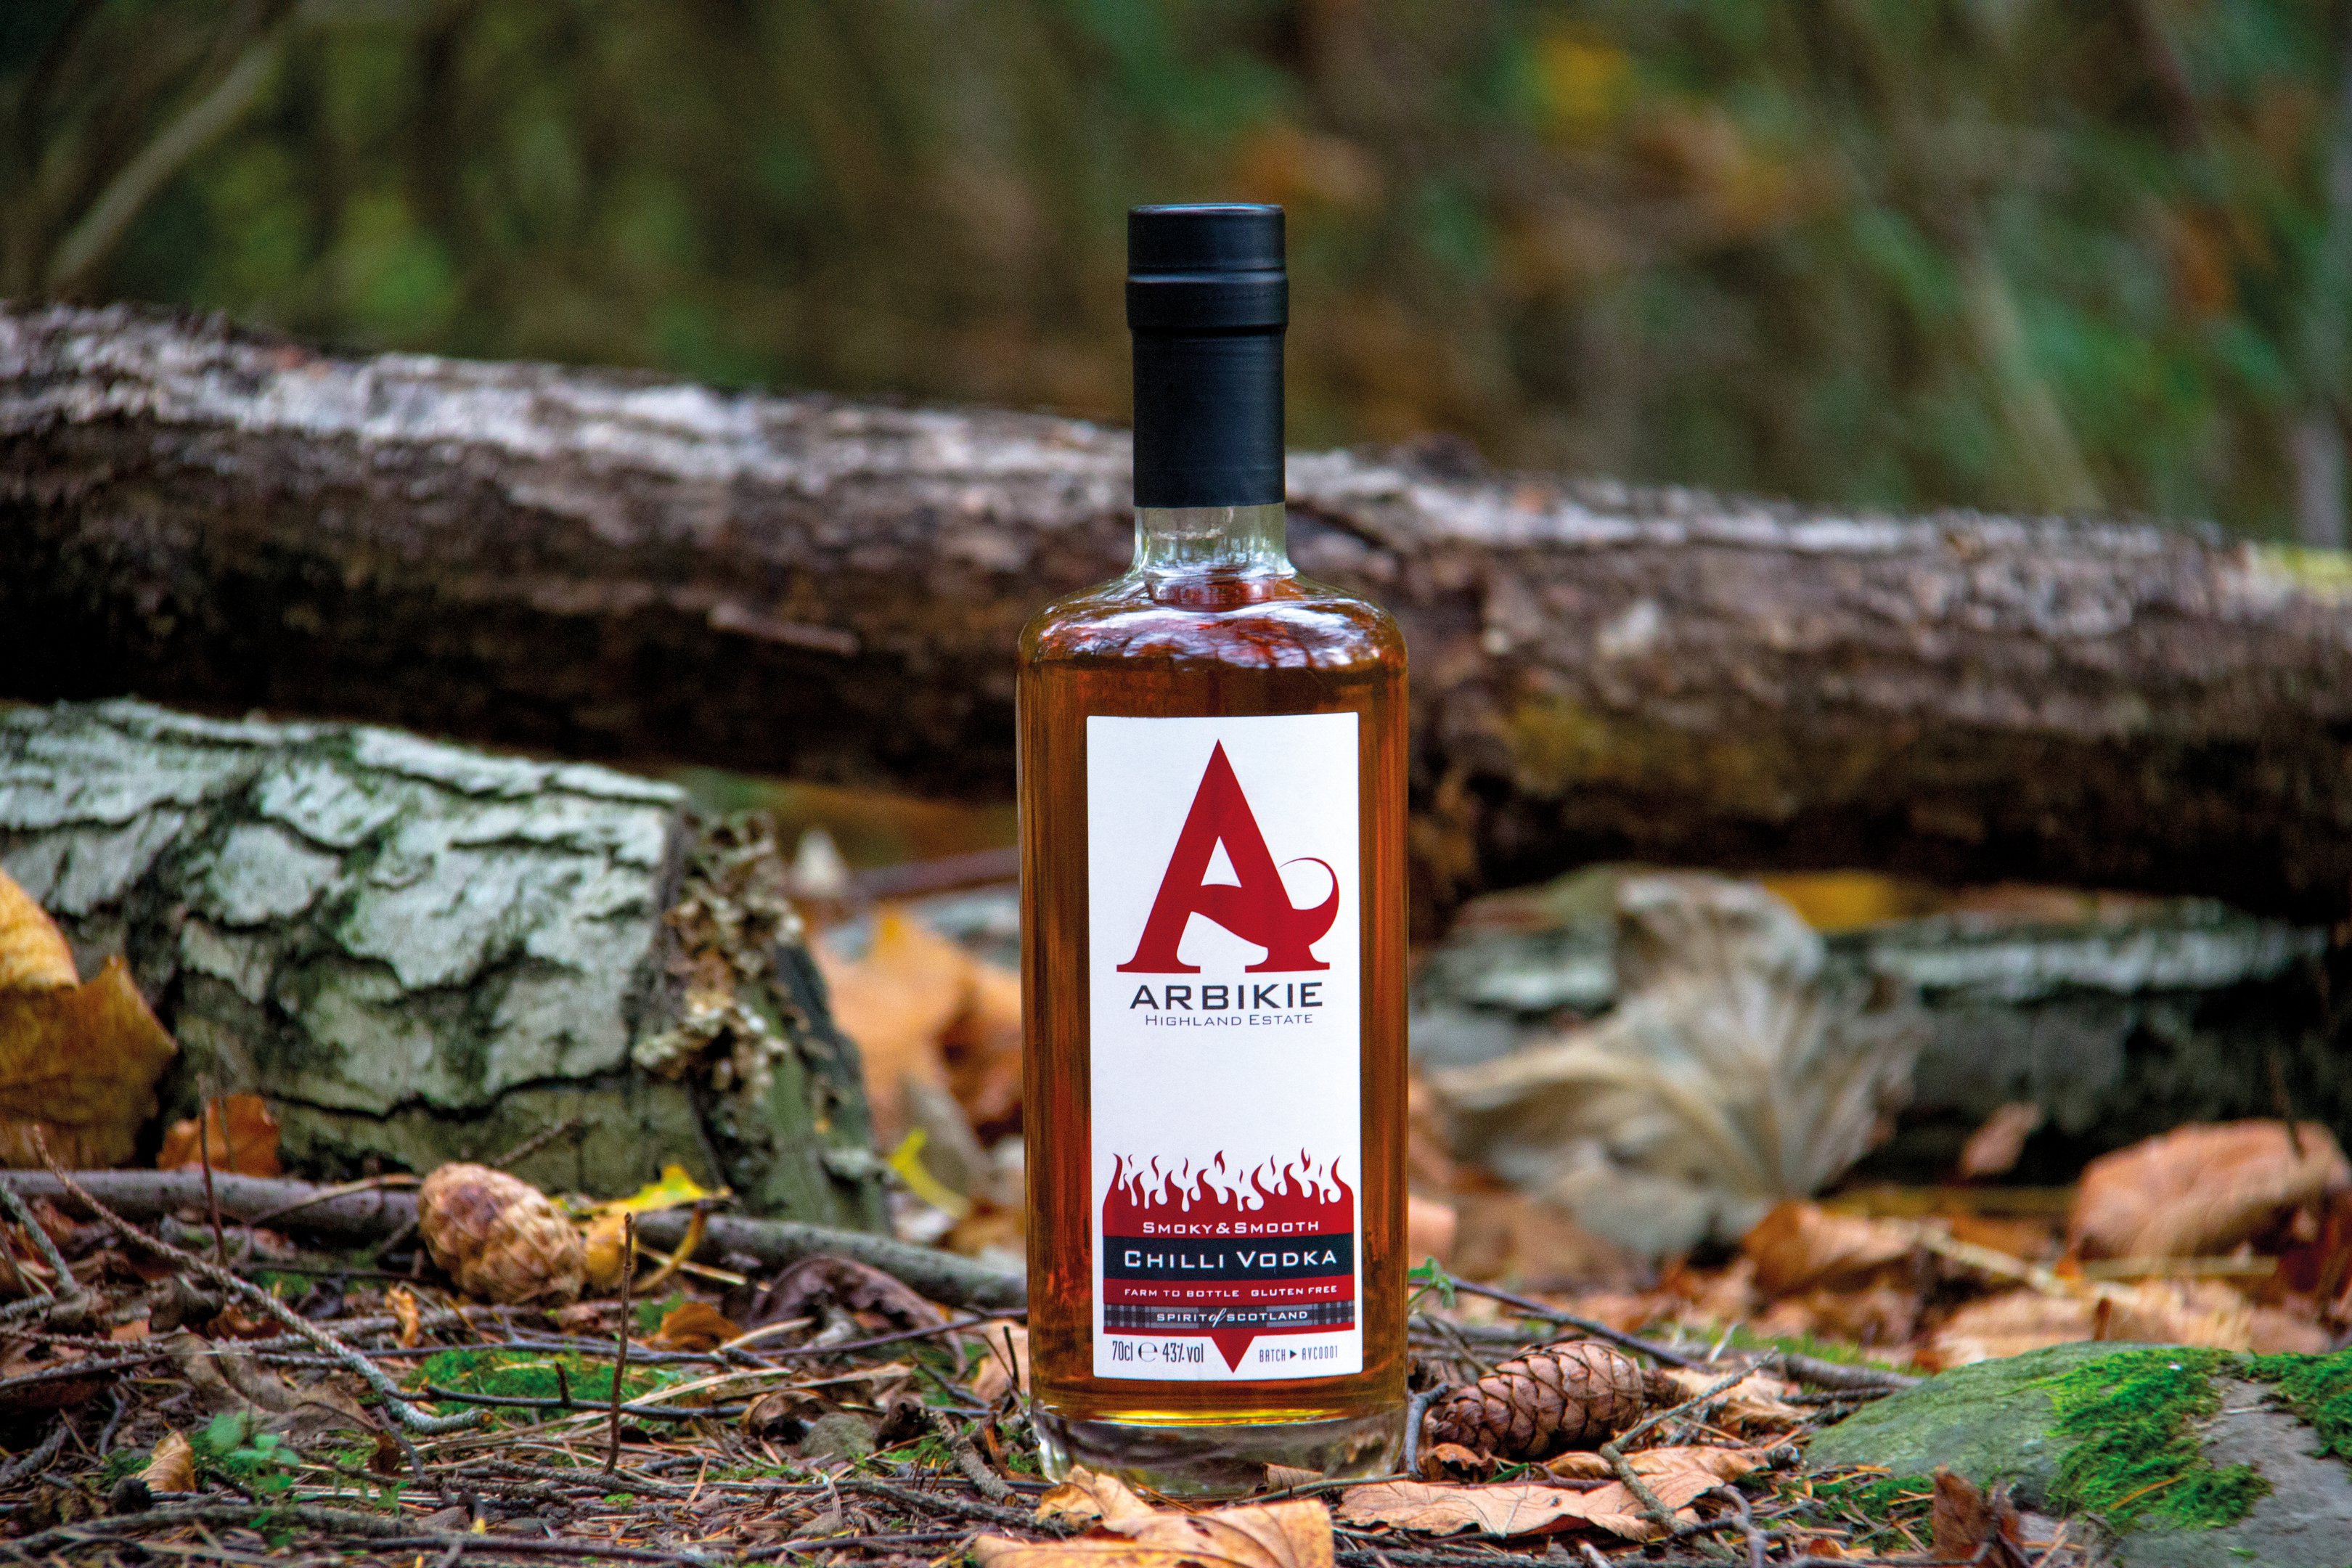 Chilli flavoured vodka from Arbikie distillery